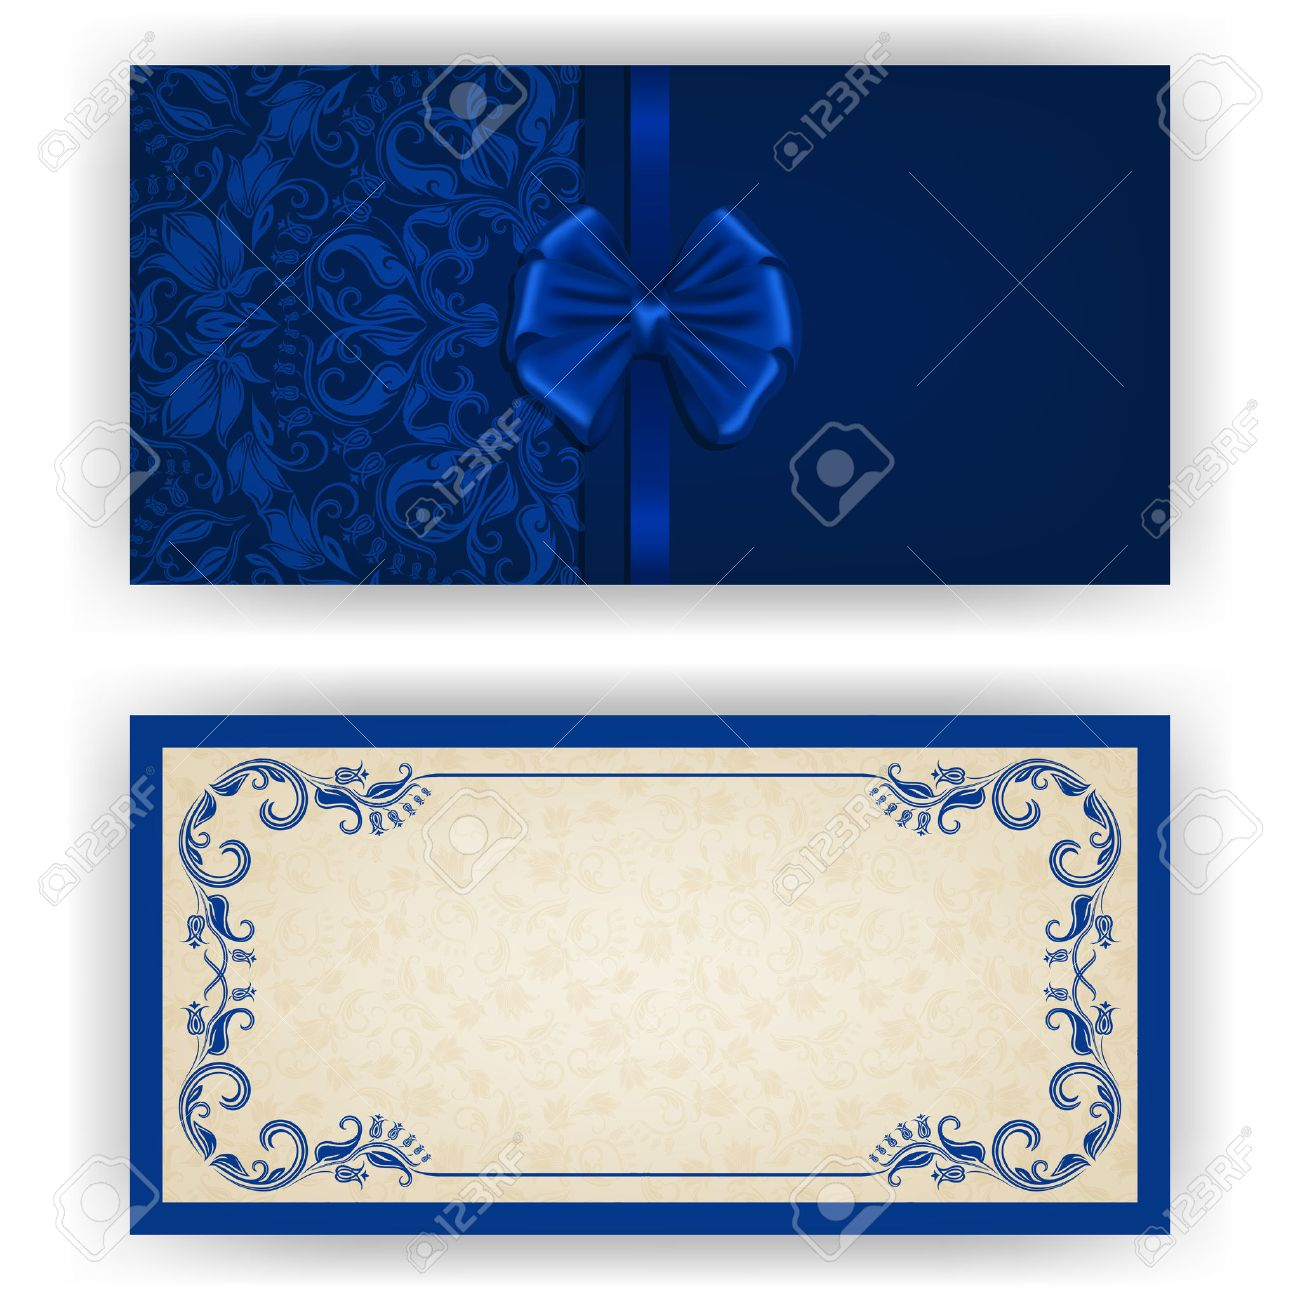 elegant template luxury invitation card with lace ornament